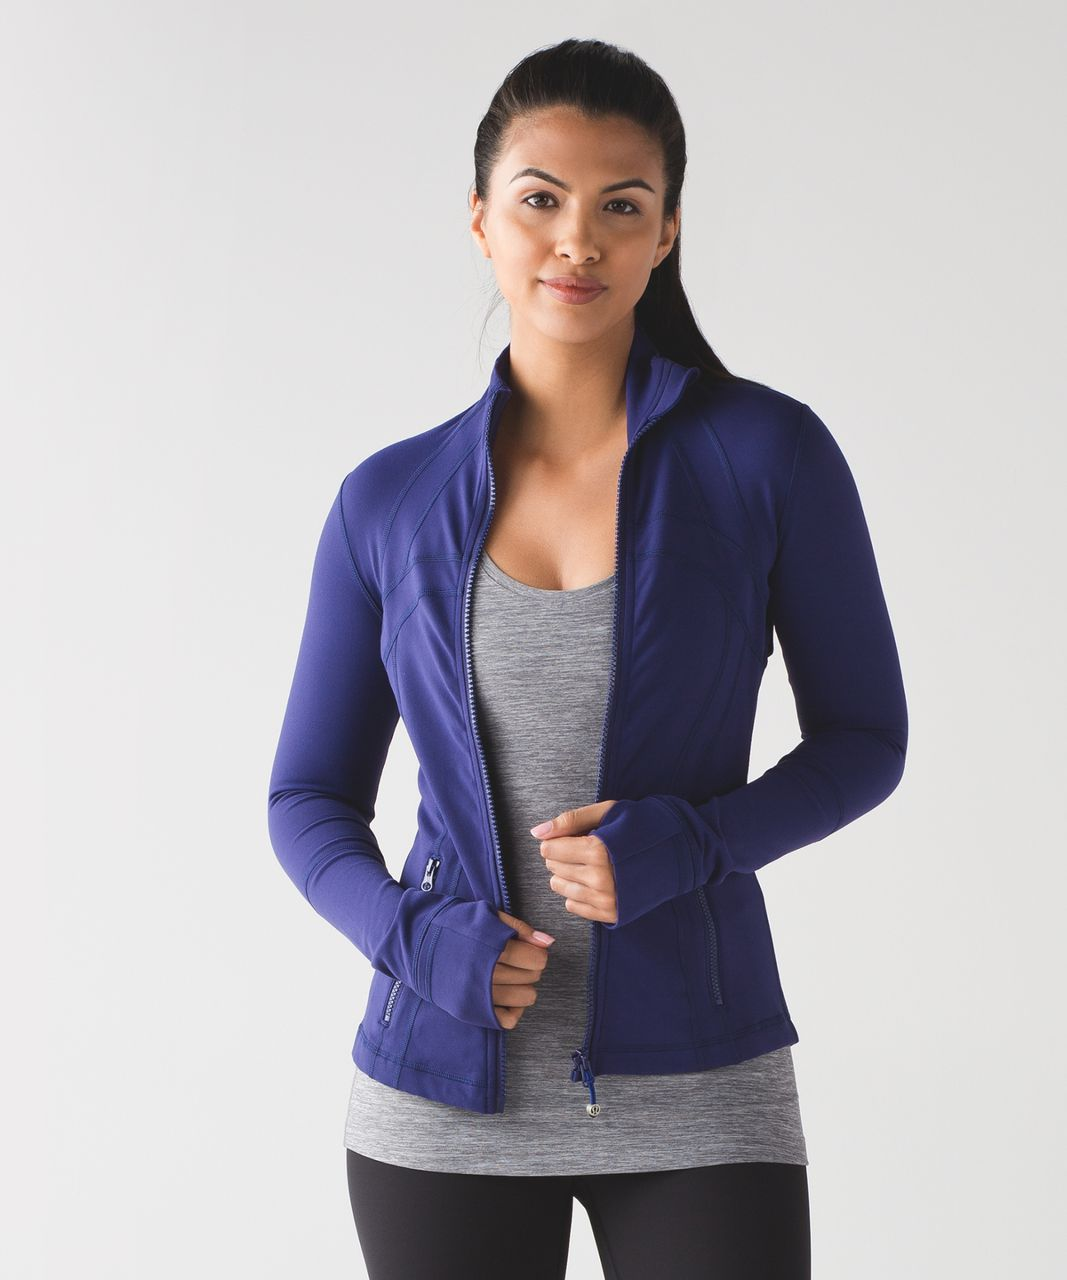 Lululemon Define Jacket - Emperor Blue